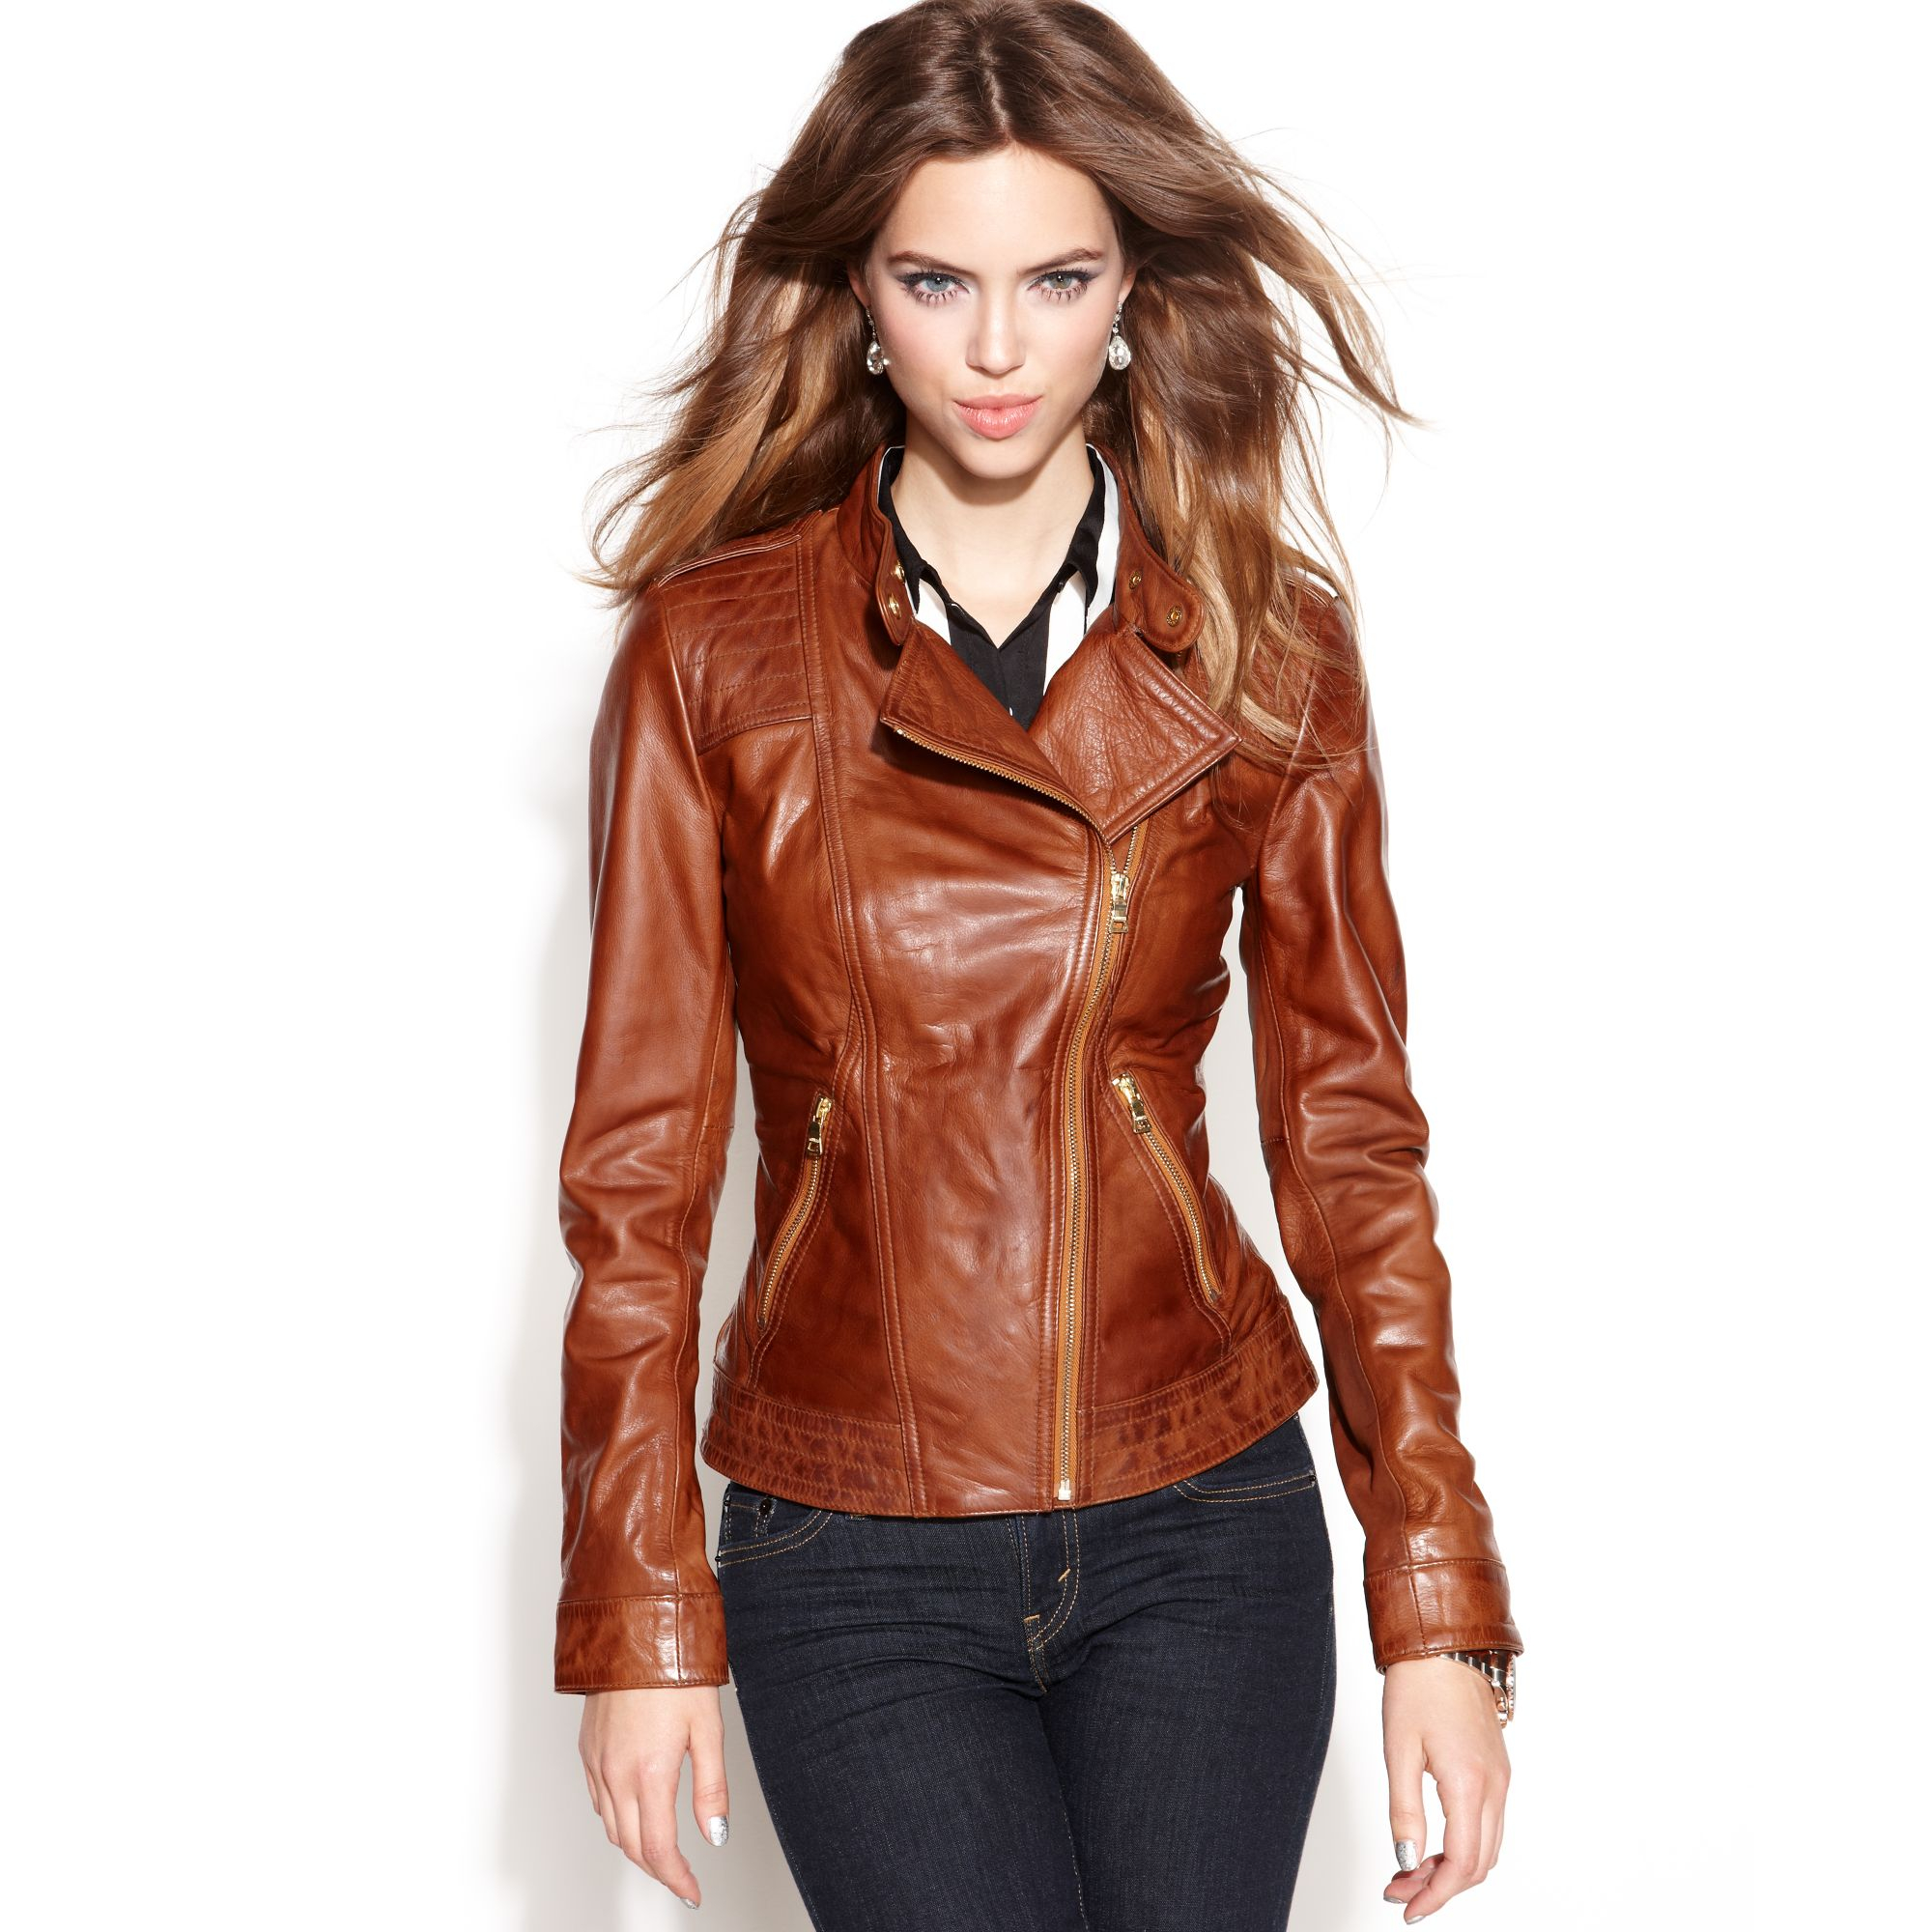 Guess leather jackets